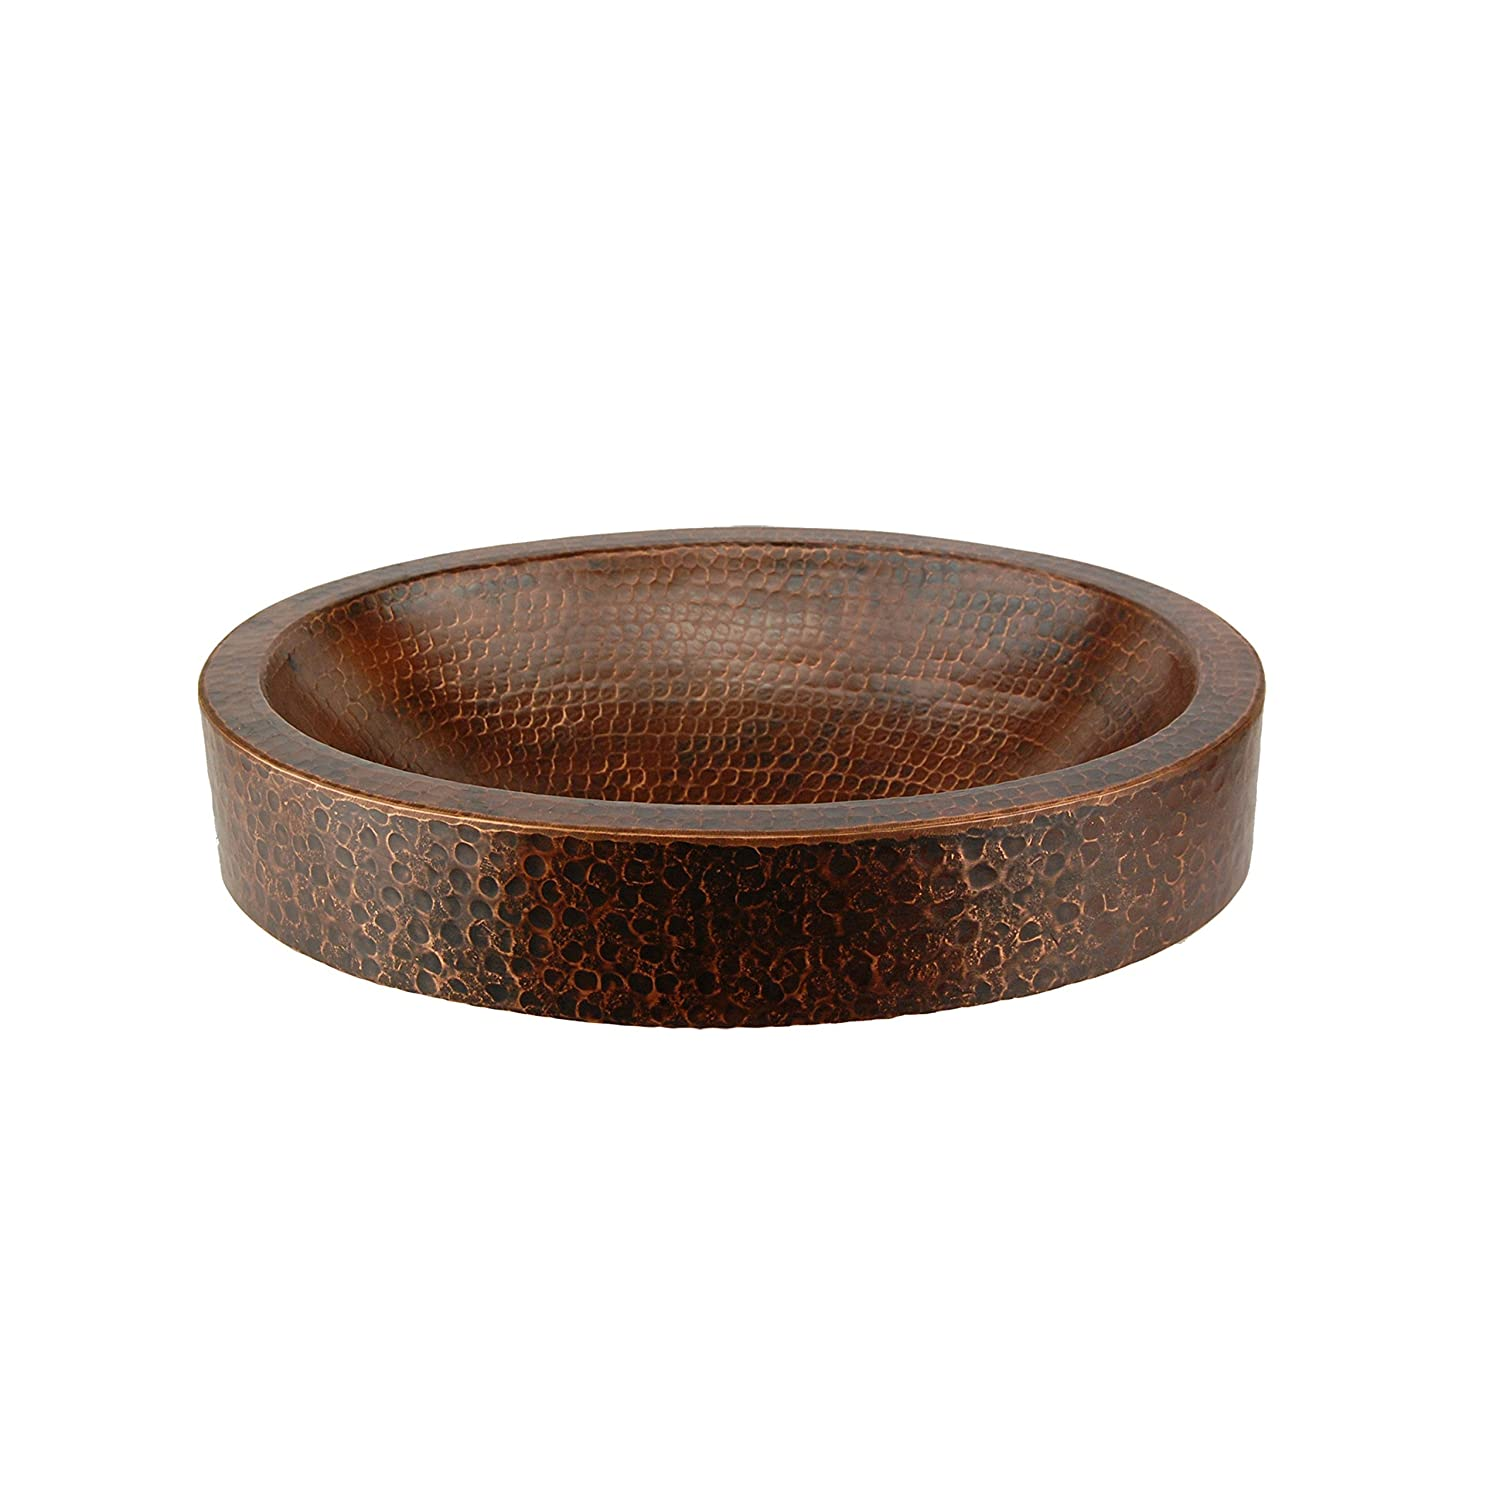 Premier Copper Products VO17SKDB Oval Skirted Vessel Hammered Copper Sink, Oil Rubbed Bronze